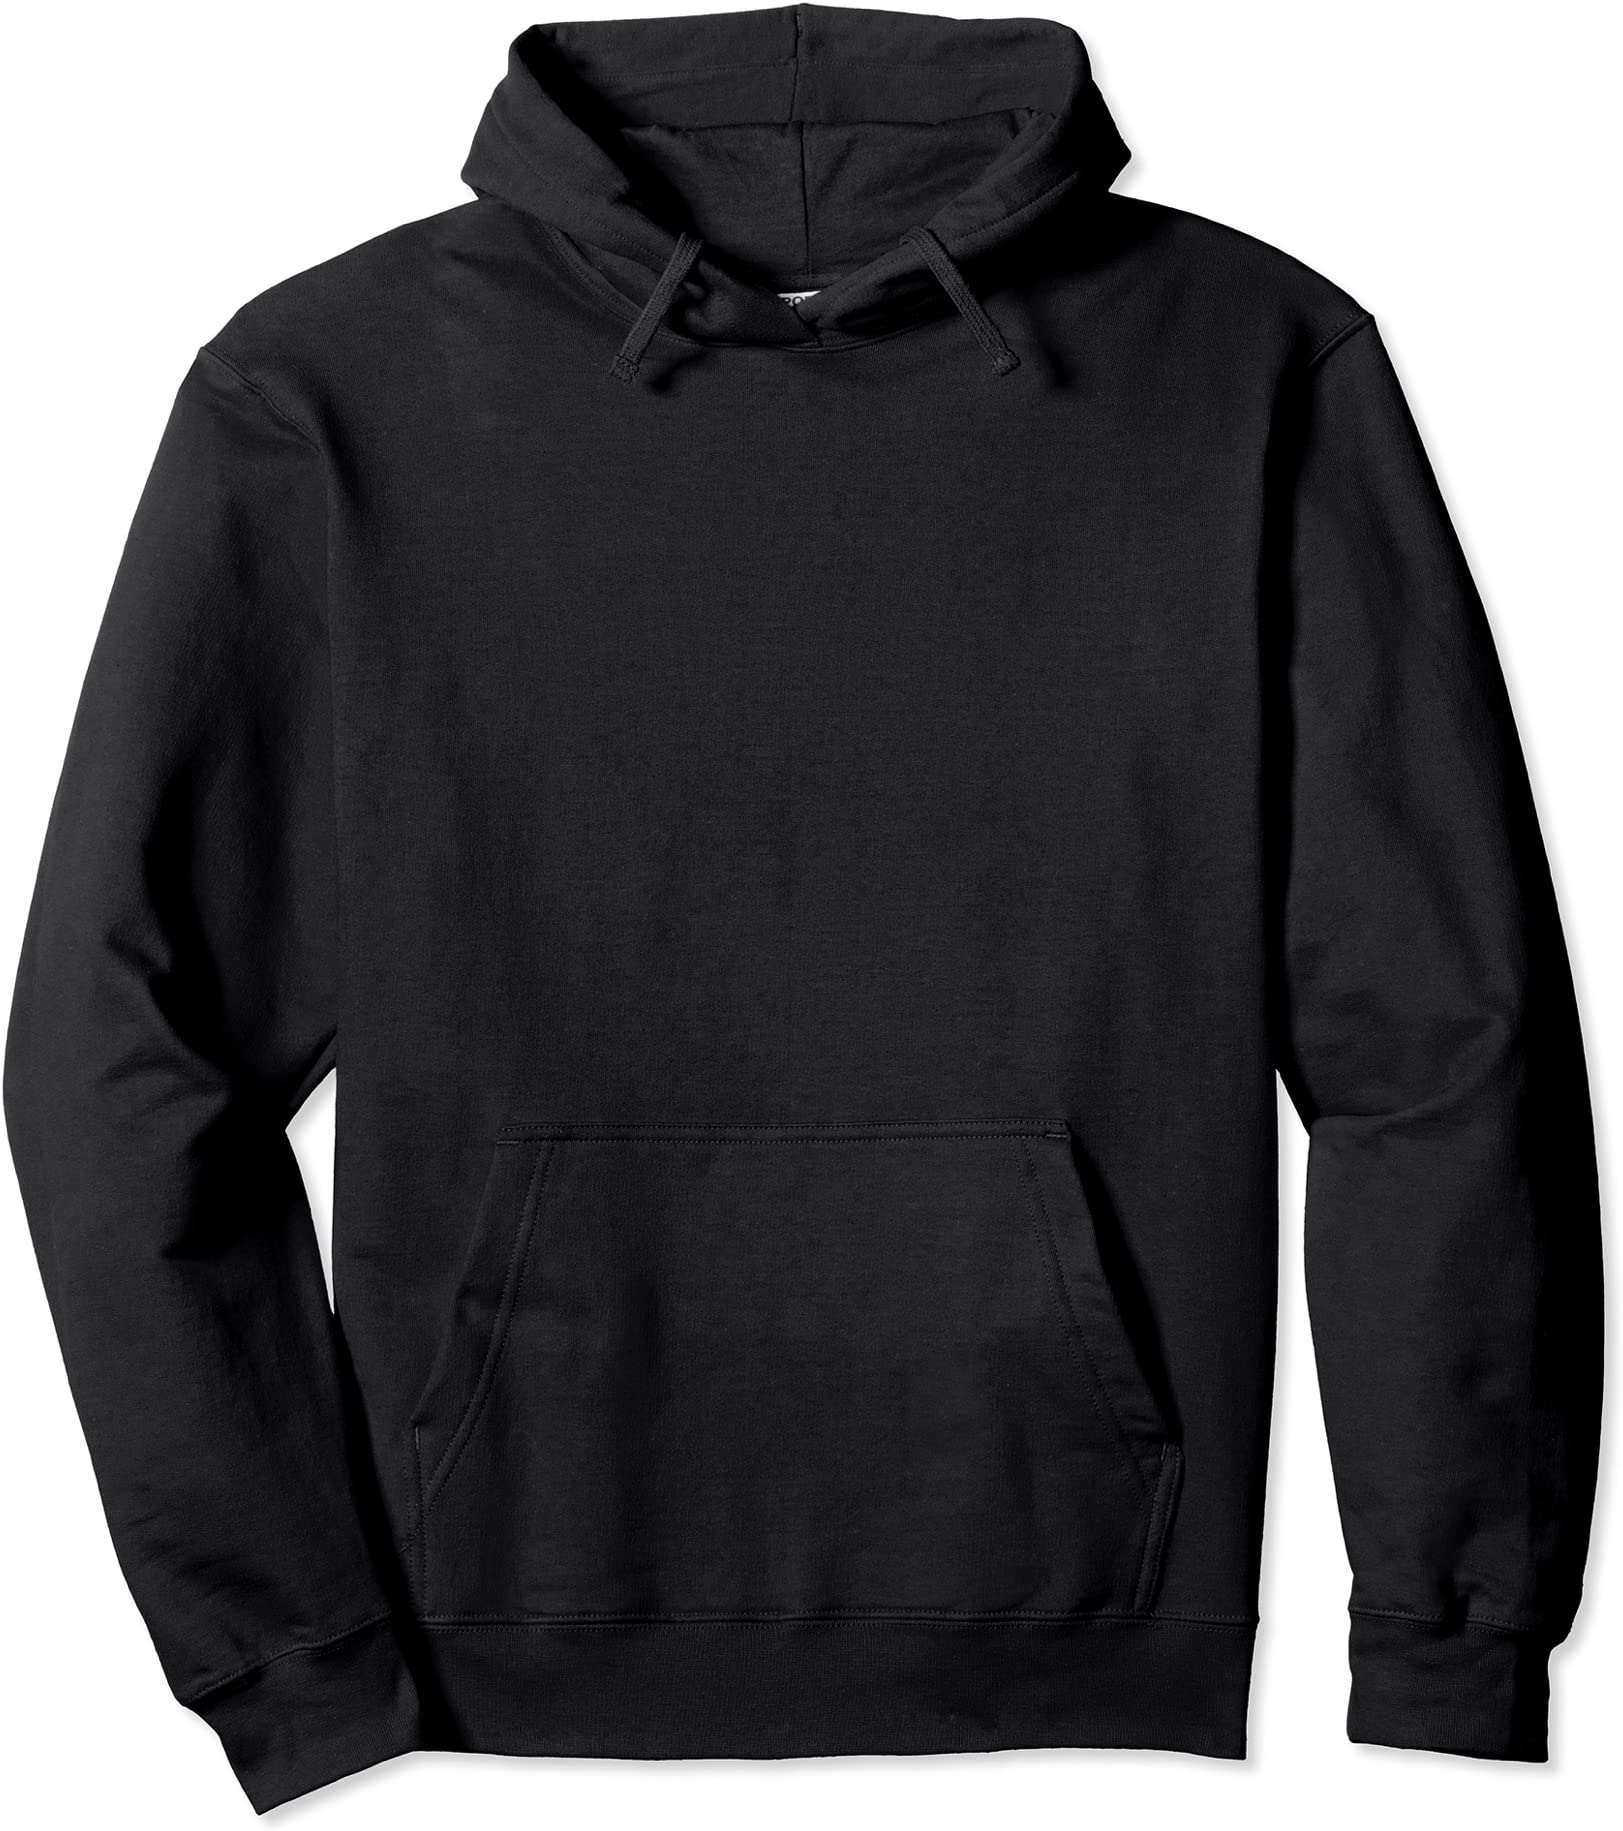 Dab DanceHoodie many colours hipster clothing